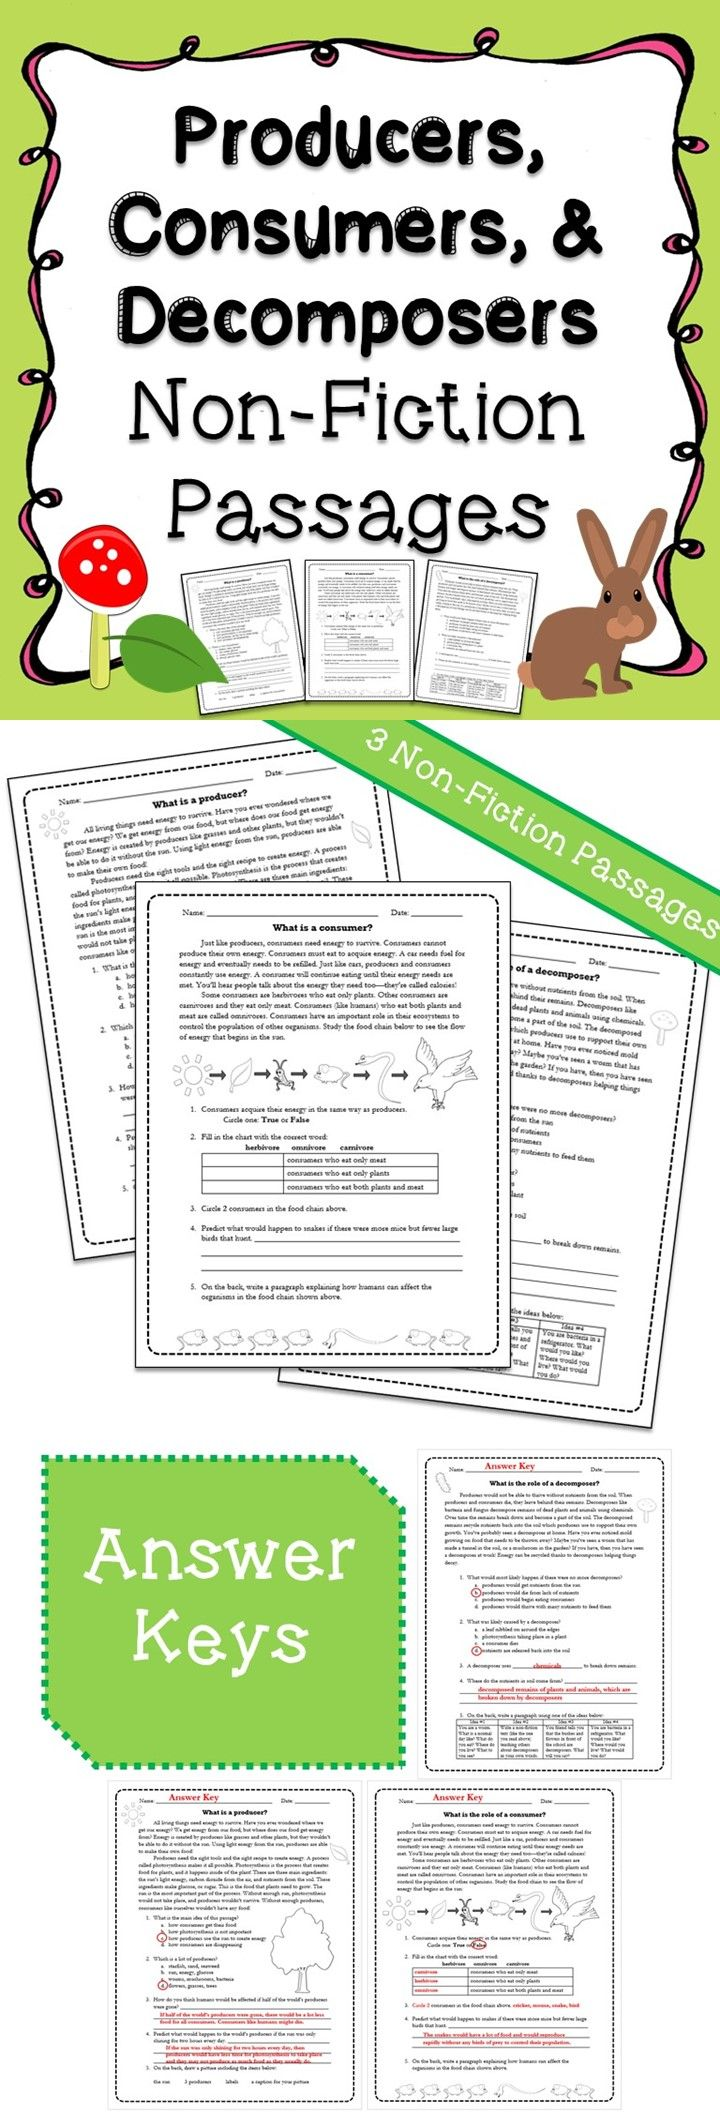 Worksheets Producers Consumers And Decomposers Worksheet producers consumers decomposers non fiction passages lexile passages